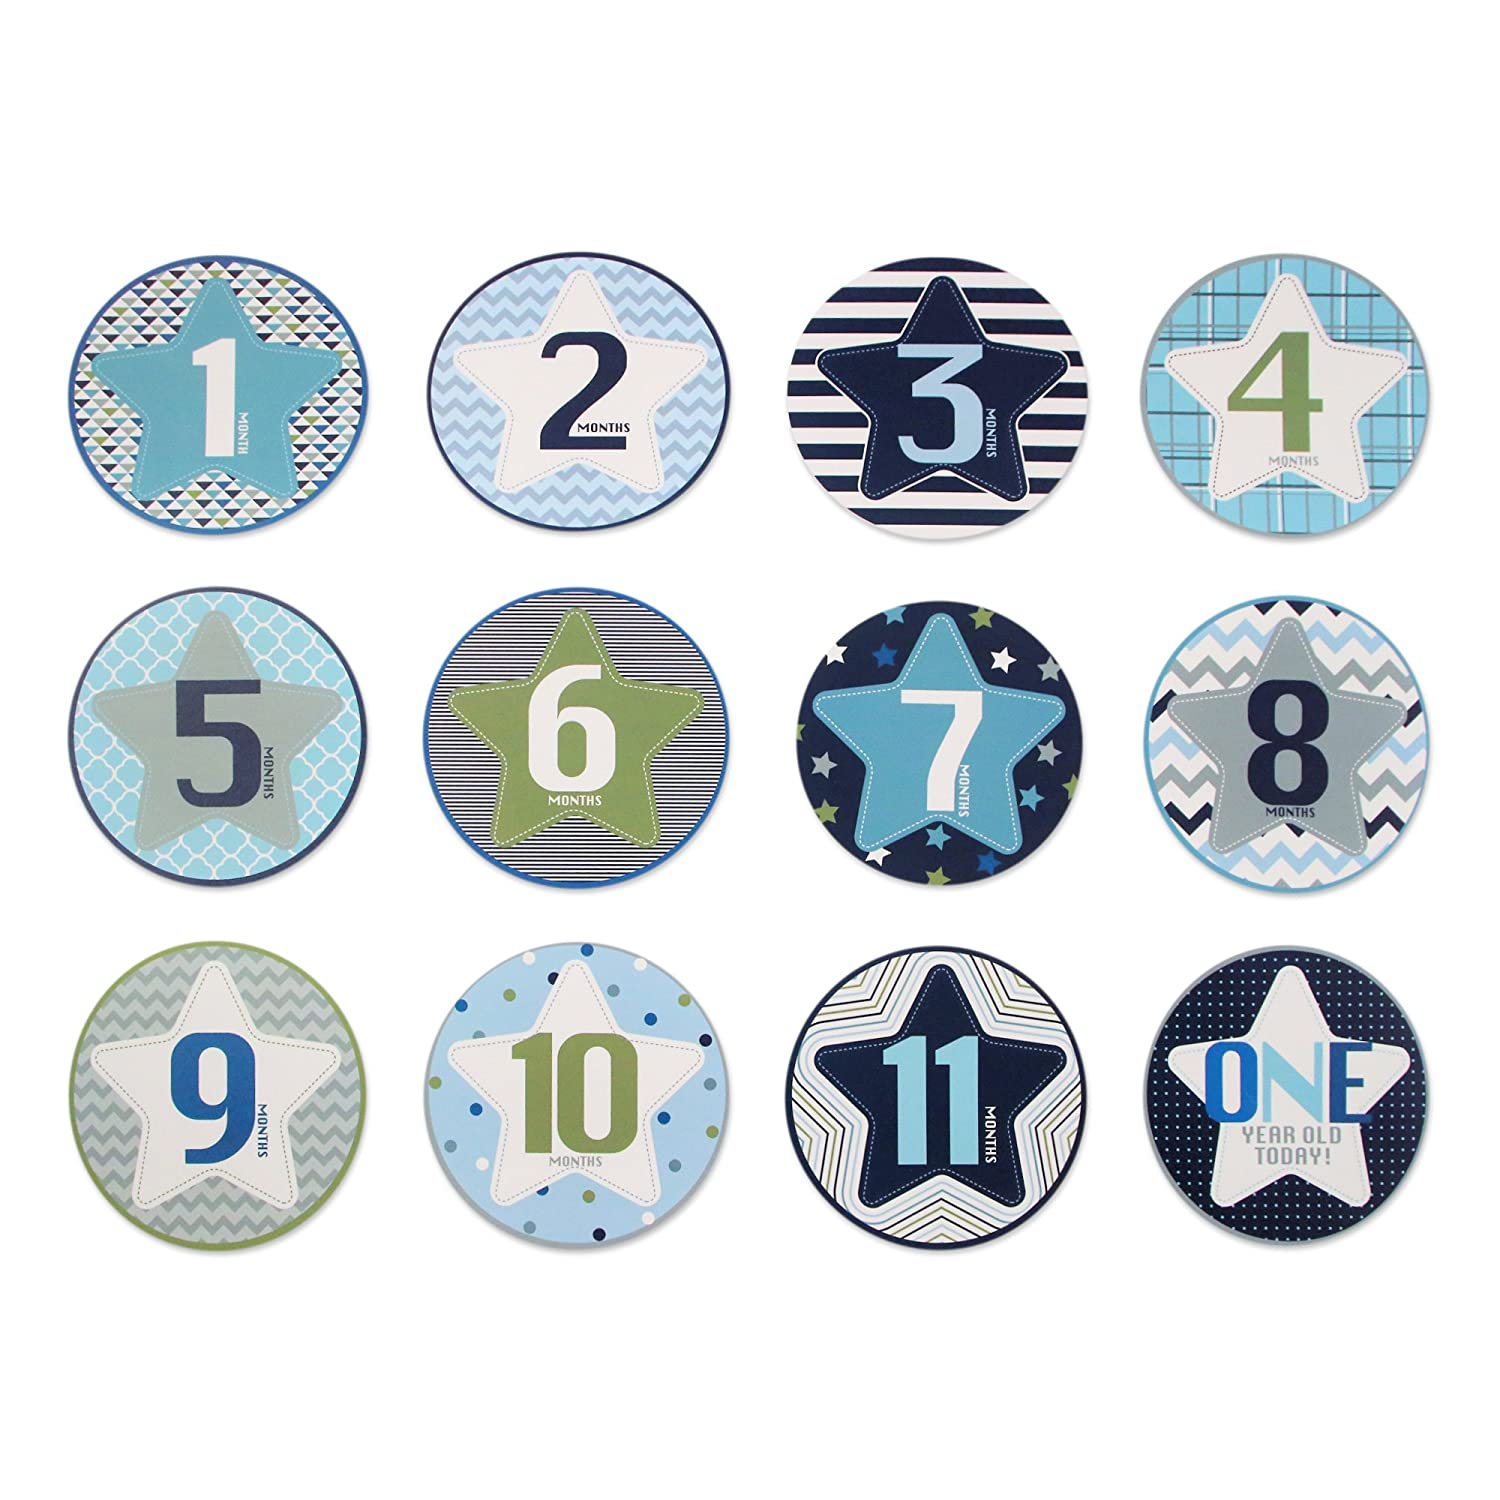 Rising Star Baby Boys Milestone Belly Stickers Box Set Dress Tie Design Size GNA71832